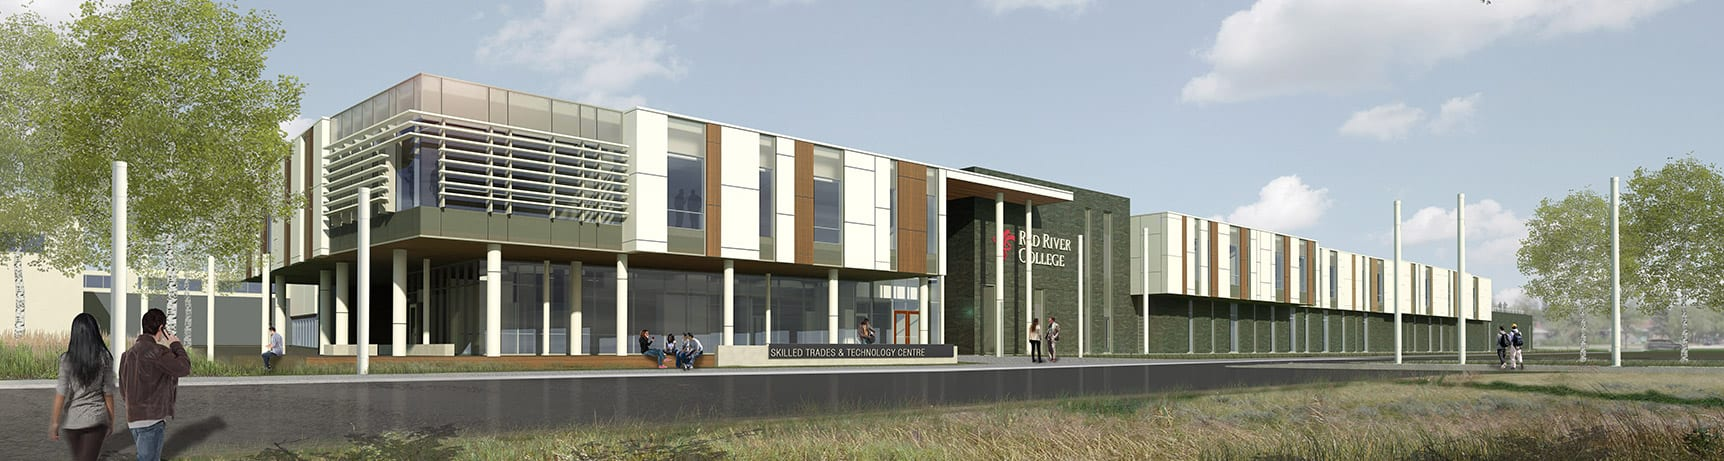 Skilled Trades and Technology Centre - Exterior